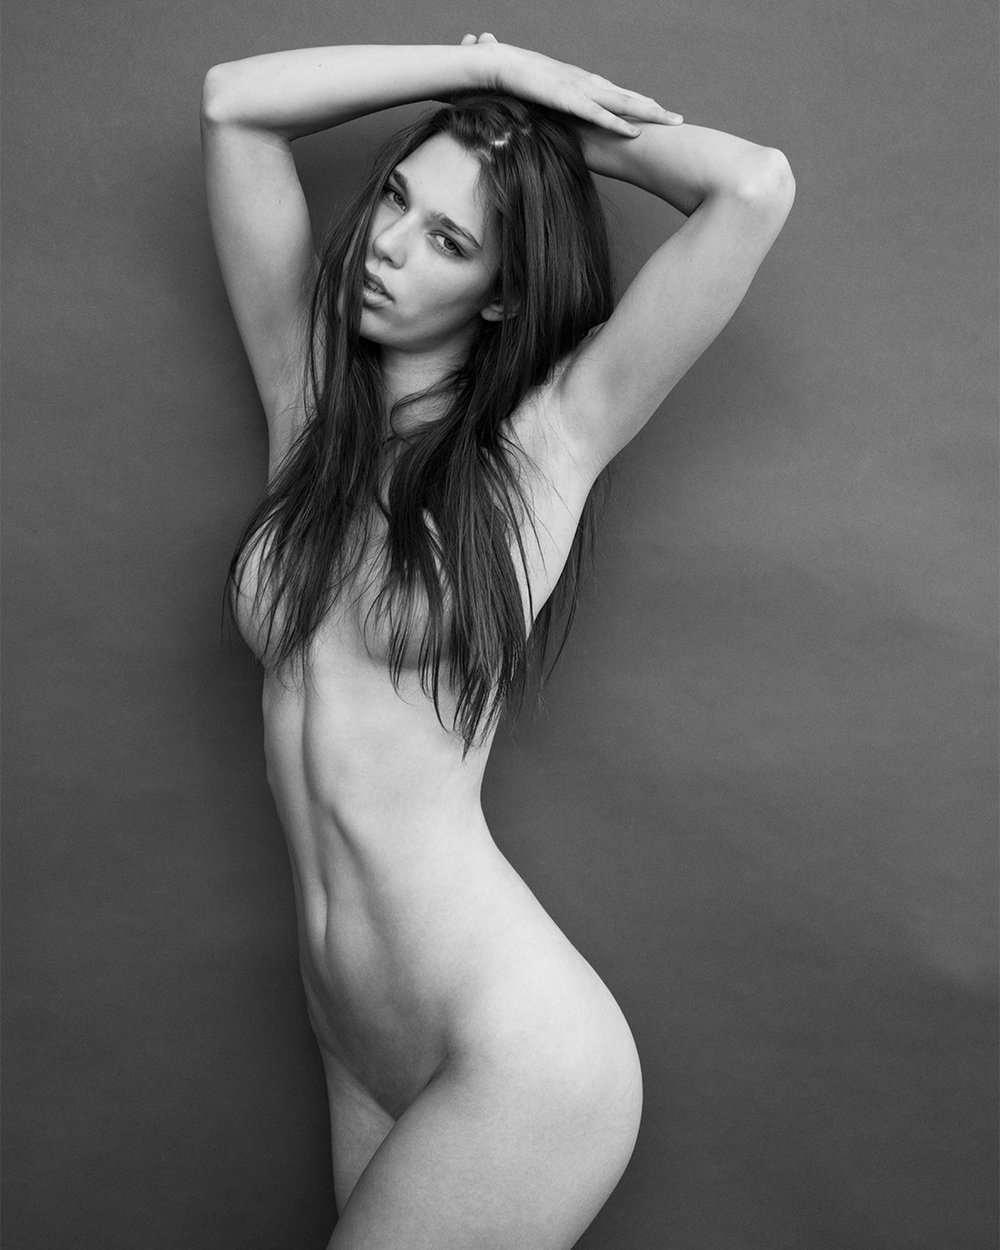 Nude of model Maye Aspen photographed in New York by Patrik Andersson